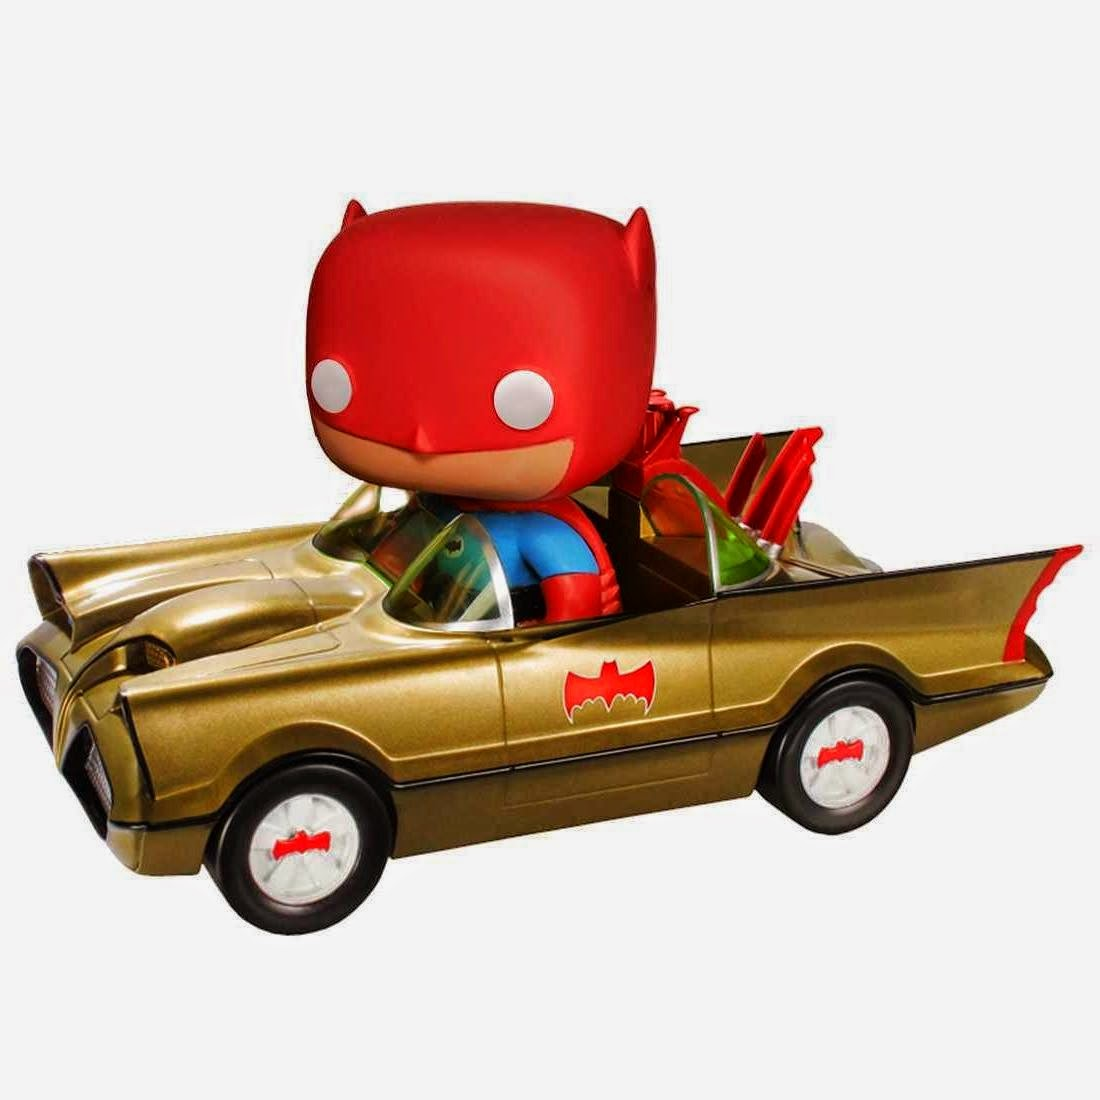 01.- Batmovil Dorado Funko Pop!